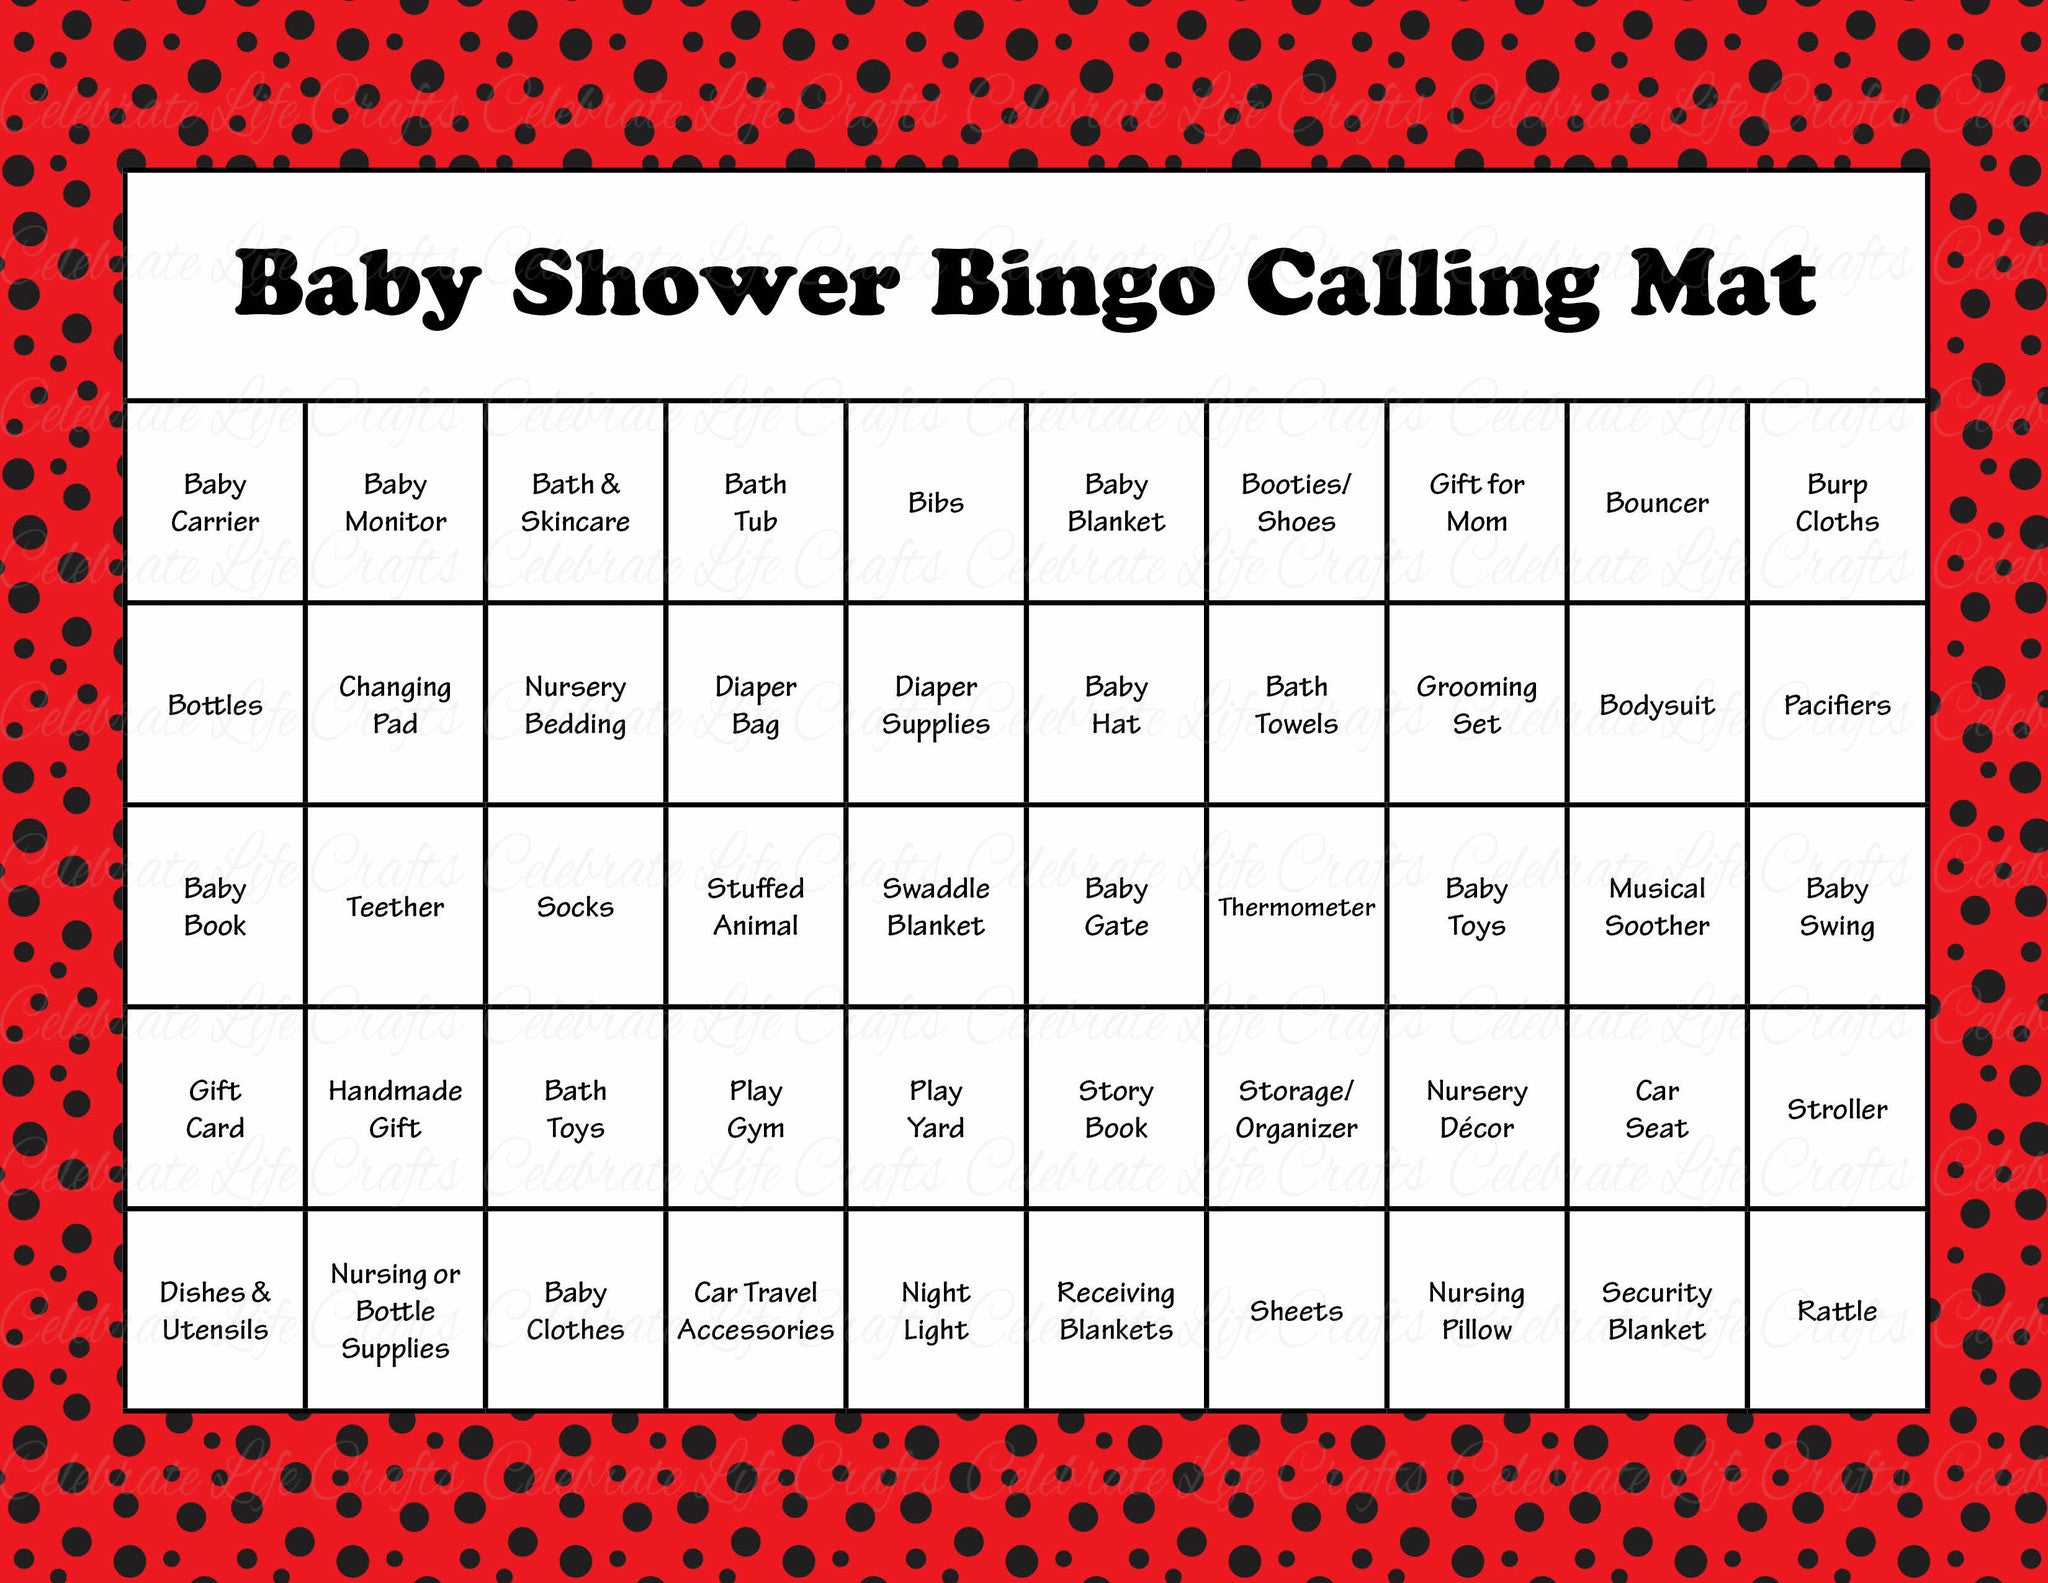 image relating to Printable Bingo Calling Cards named Ladybug Child Shower Activity Down load for Lady Youngster Bingo